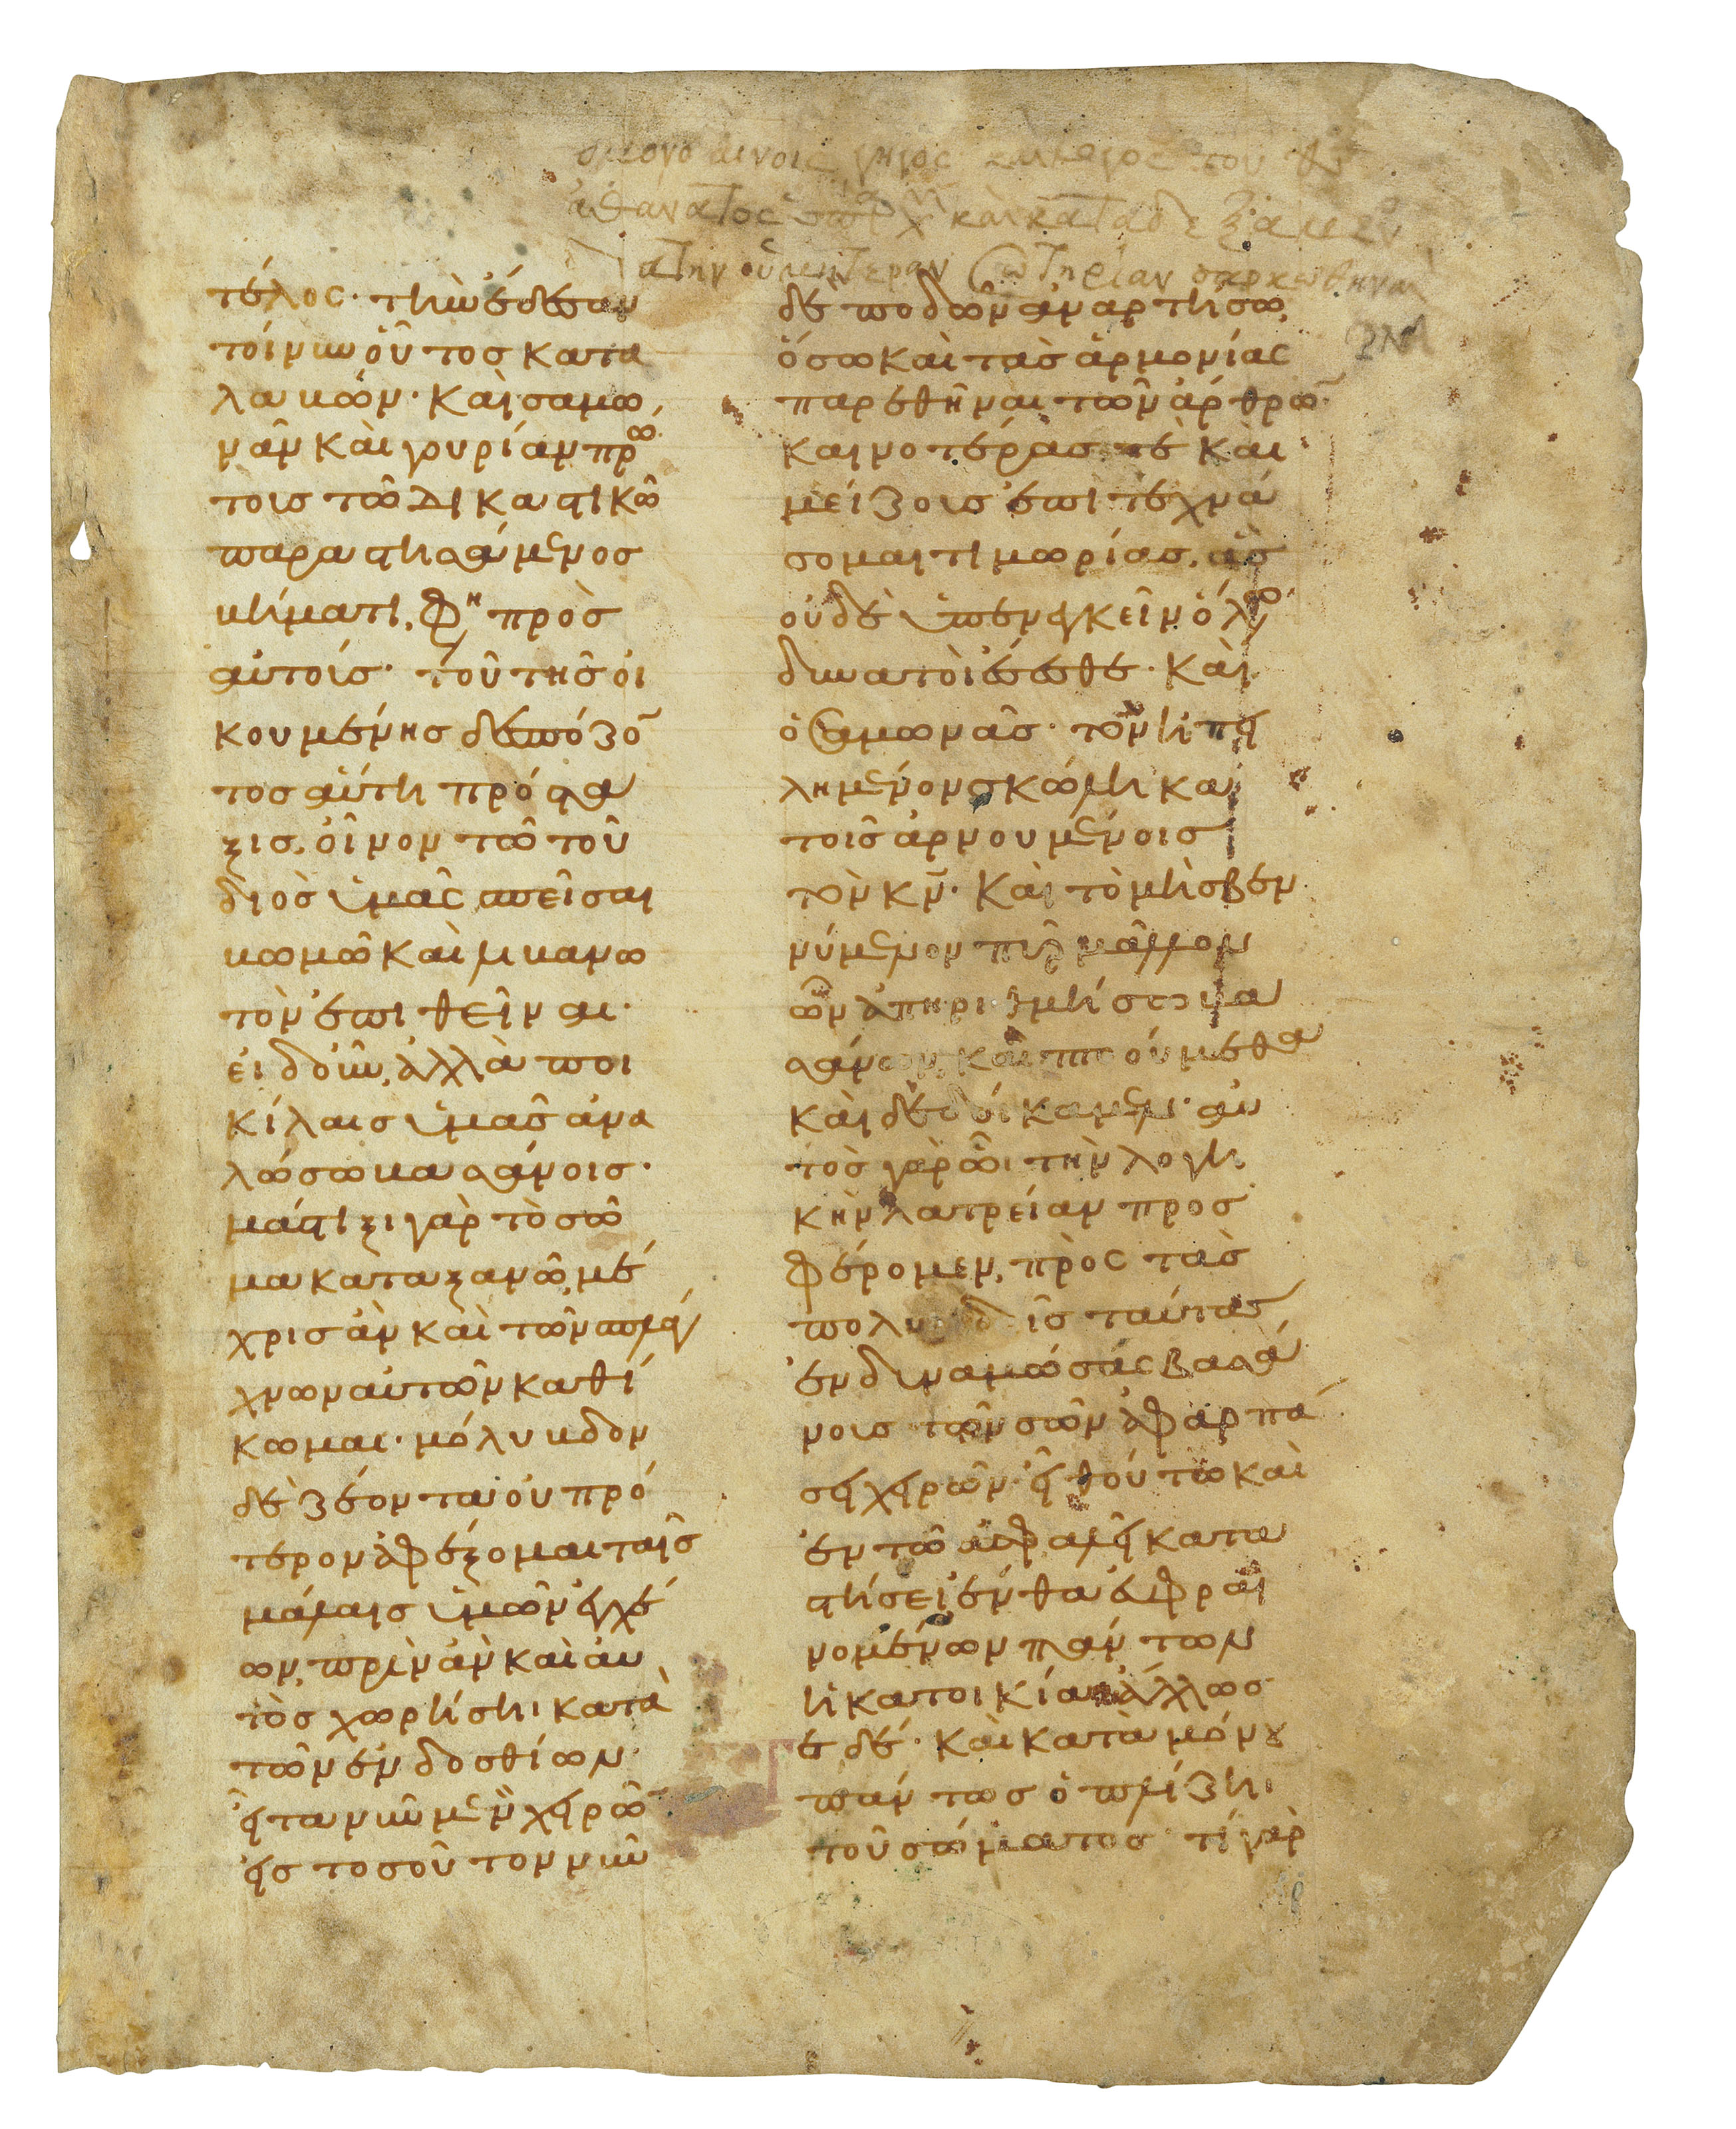 SYMEON METAPHRASTES, Menologion: Passio of Sts Gourias and Samonas, in Greek, manuscript on vellum [eastern Mediterranean, possibly Constantinople, 11th century]